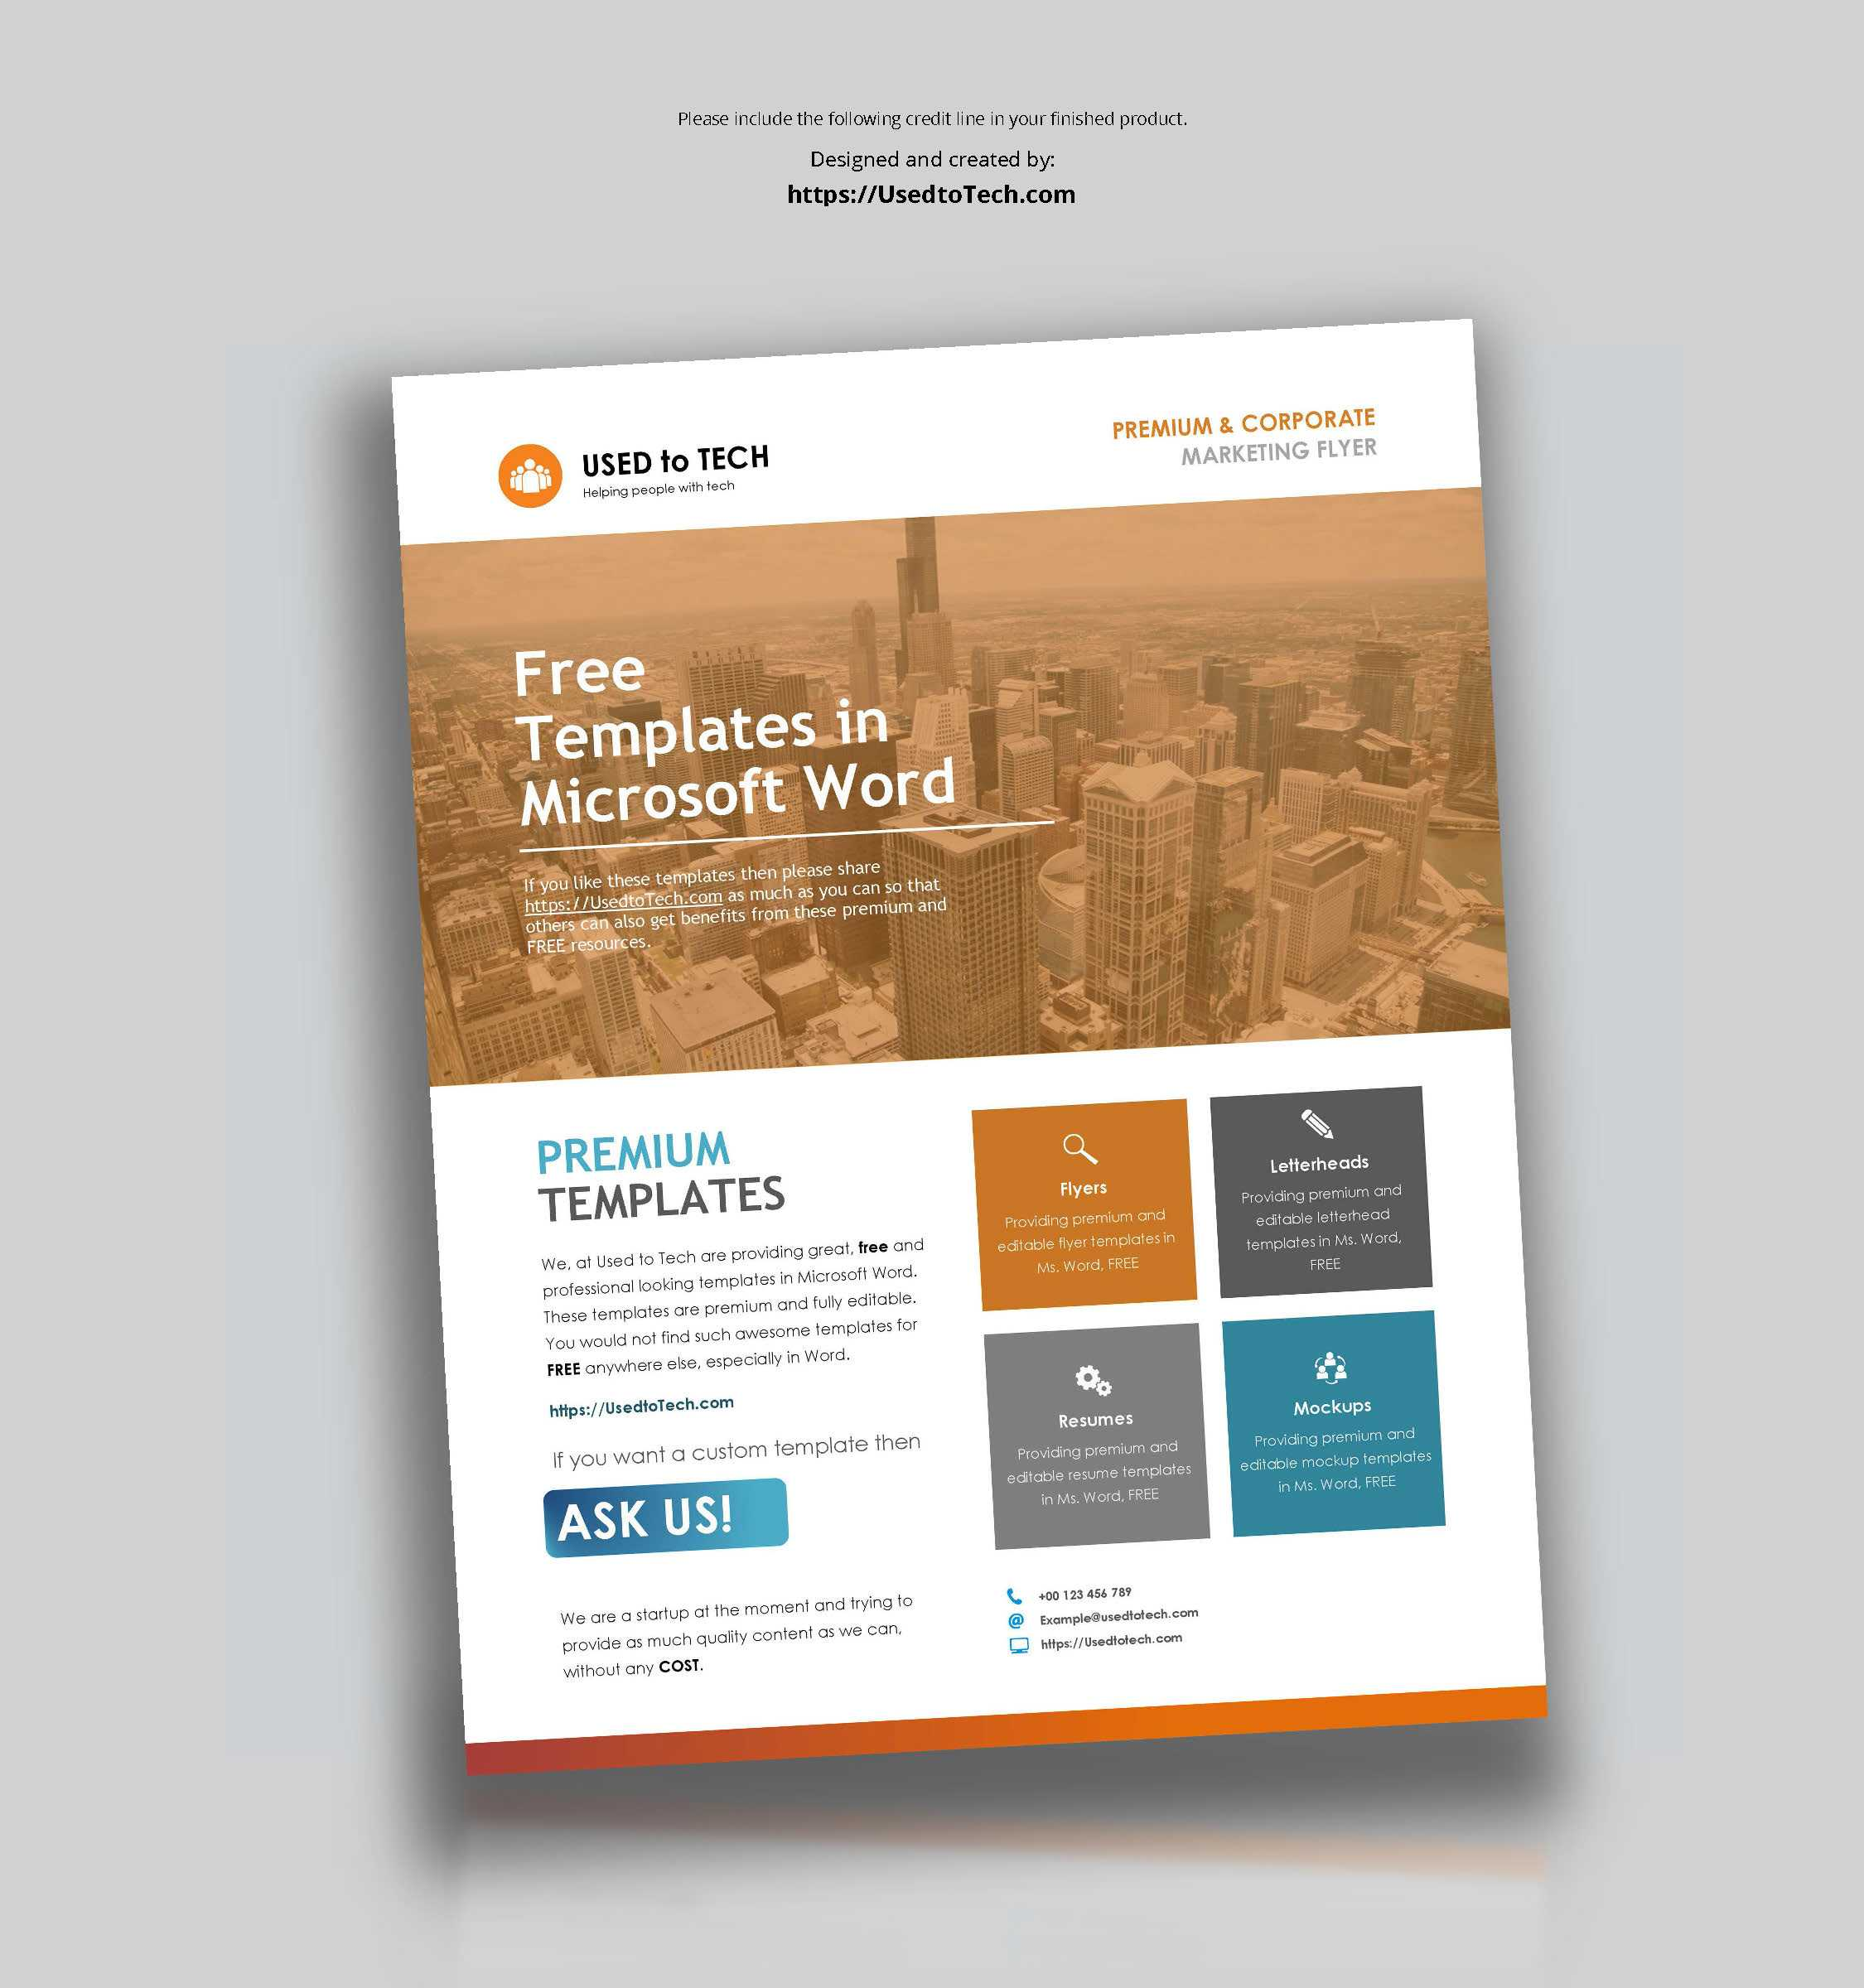 Corporate Flyer Design In Microsoft Word Free - Used To Tech Within Flyer Template For Microsoft Word